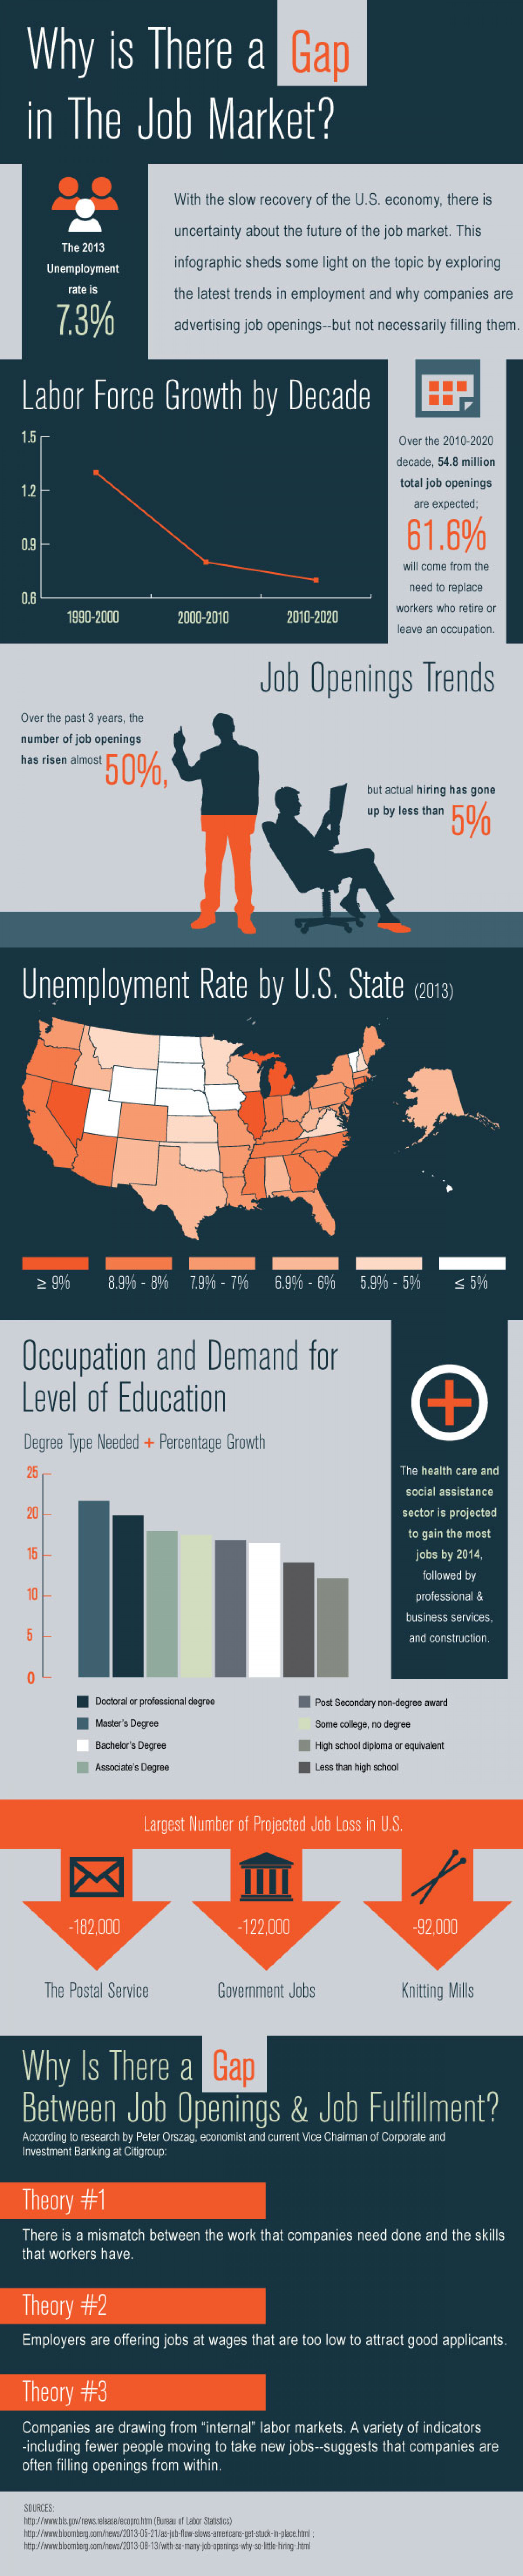 Why is There a Gap in the Job Market? (Peter Orszag) Infographic